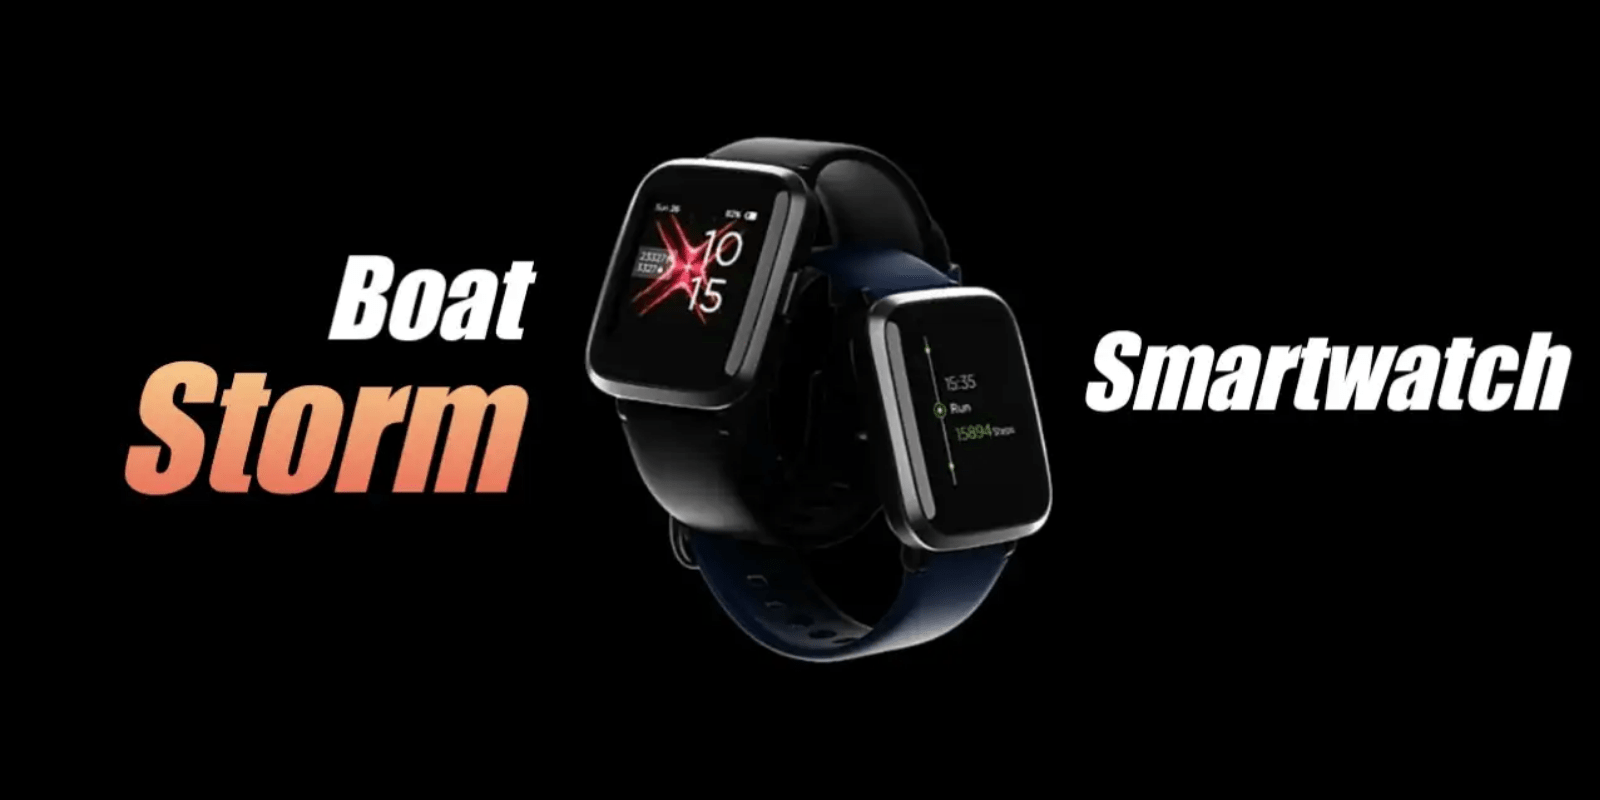 boAT launches the first smartwatch in India